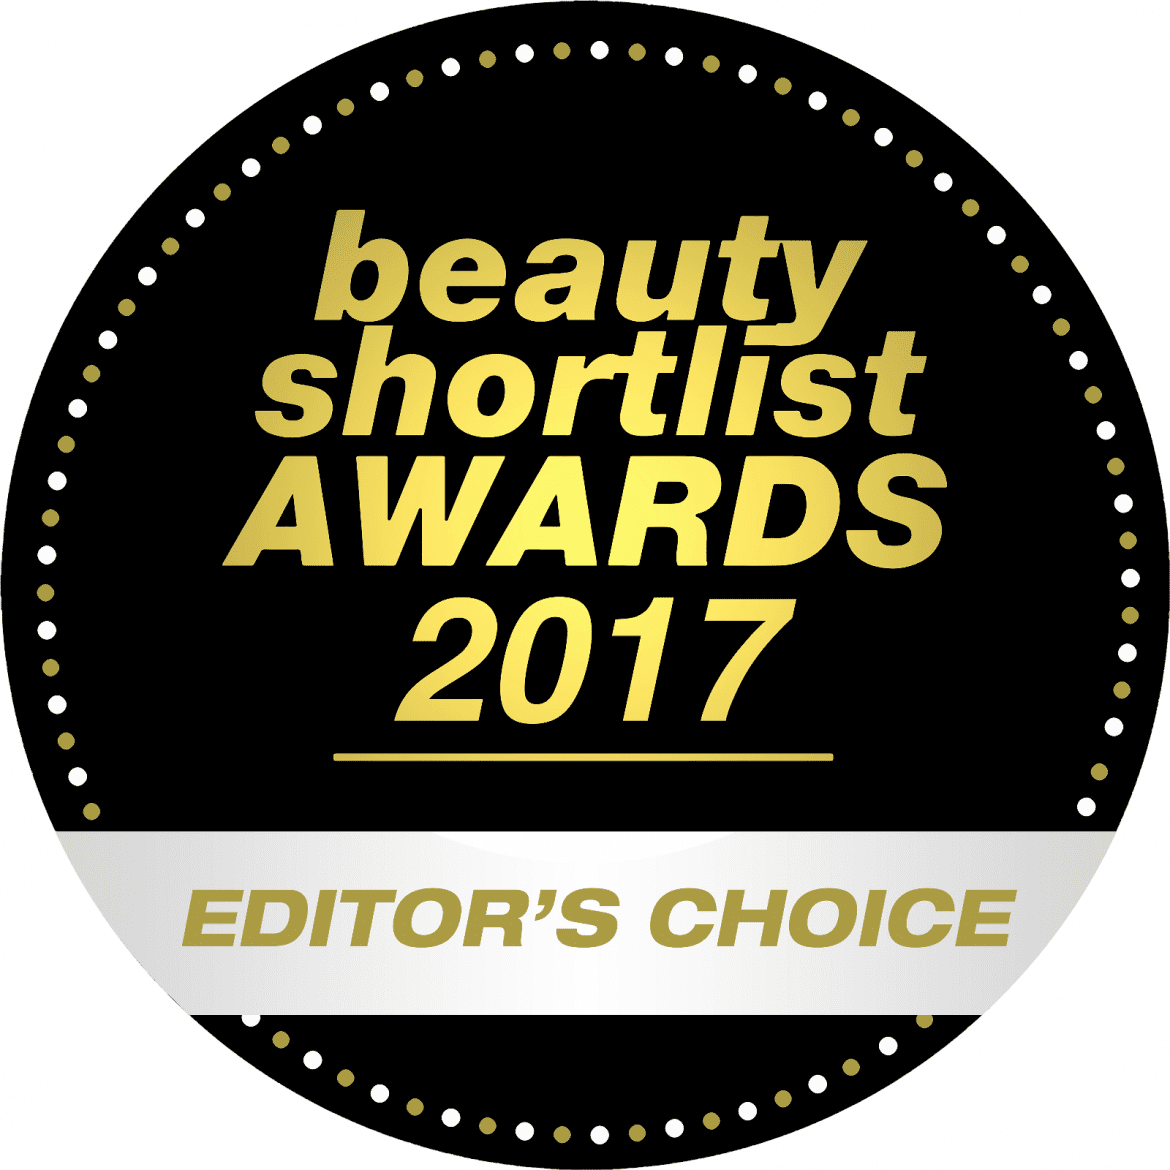 2017-editors-choice-round.png